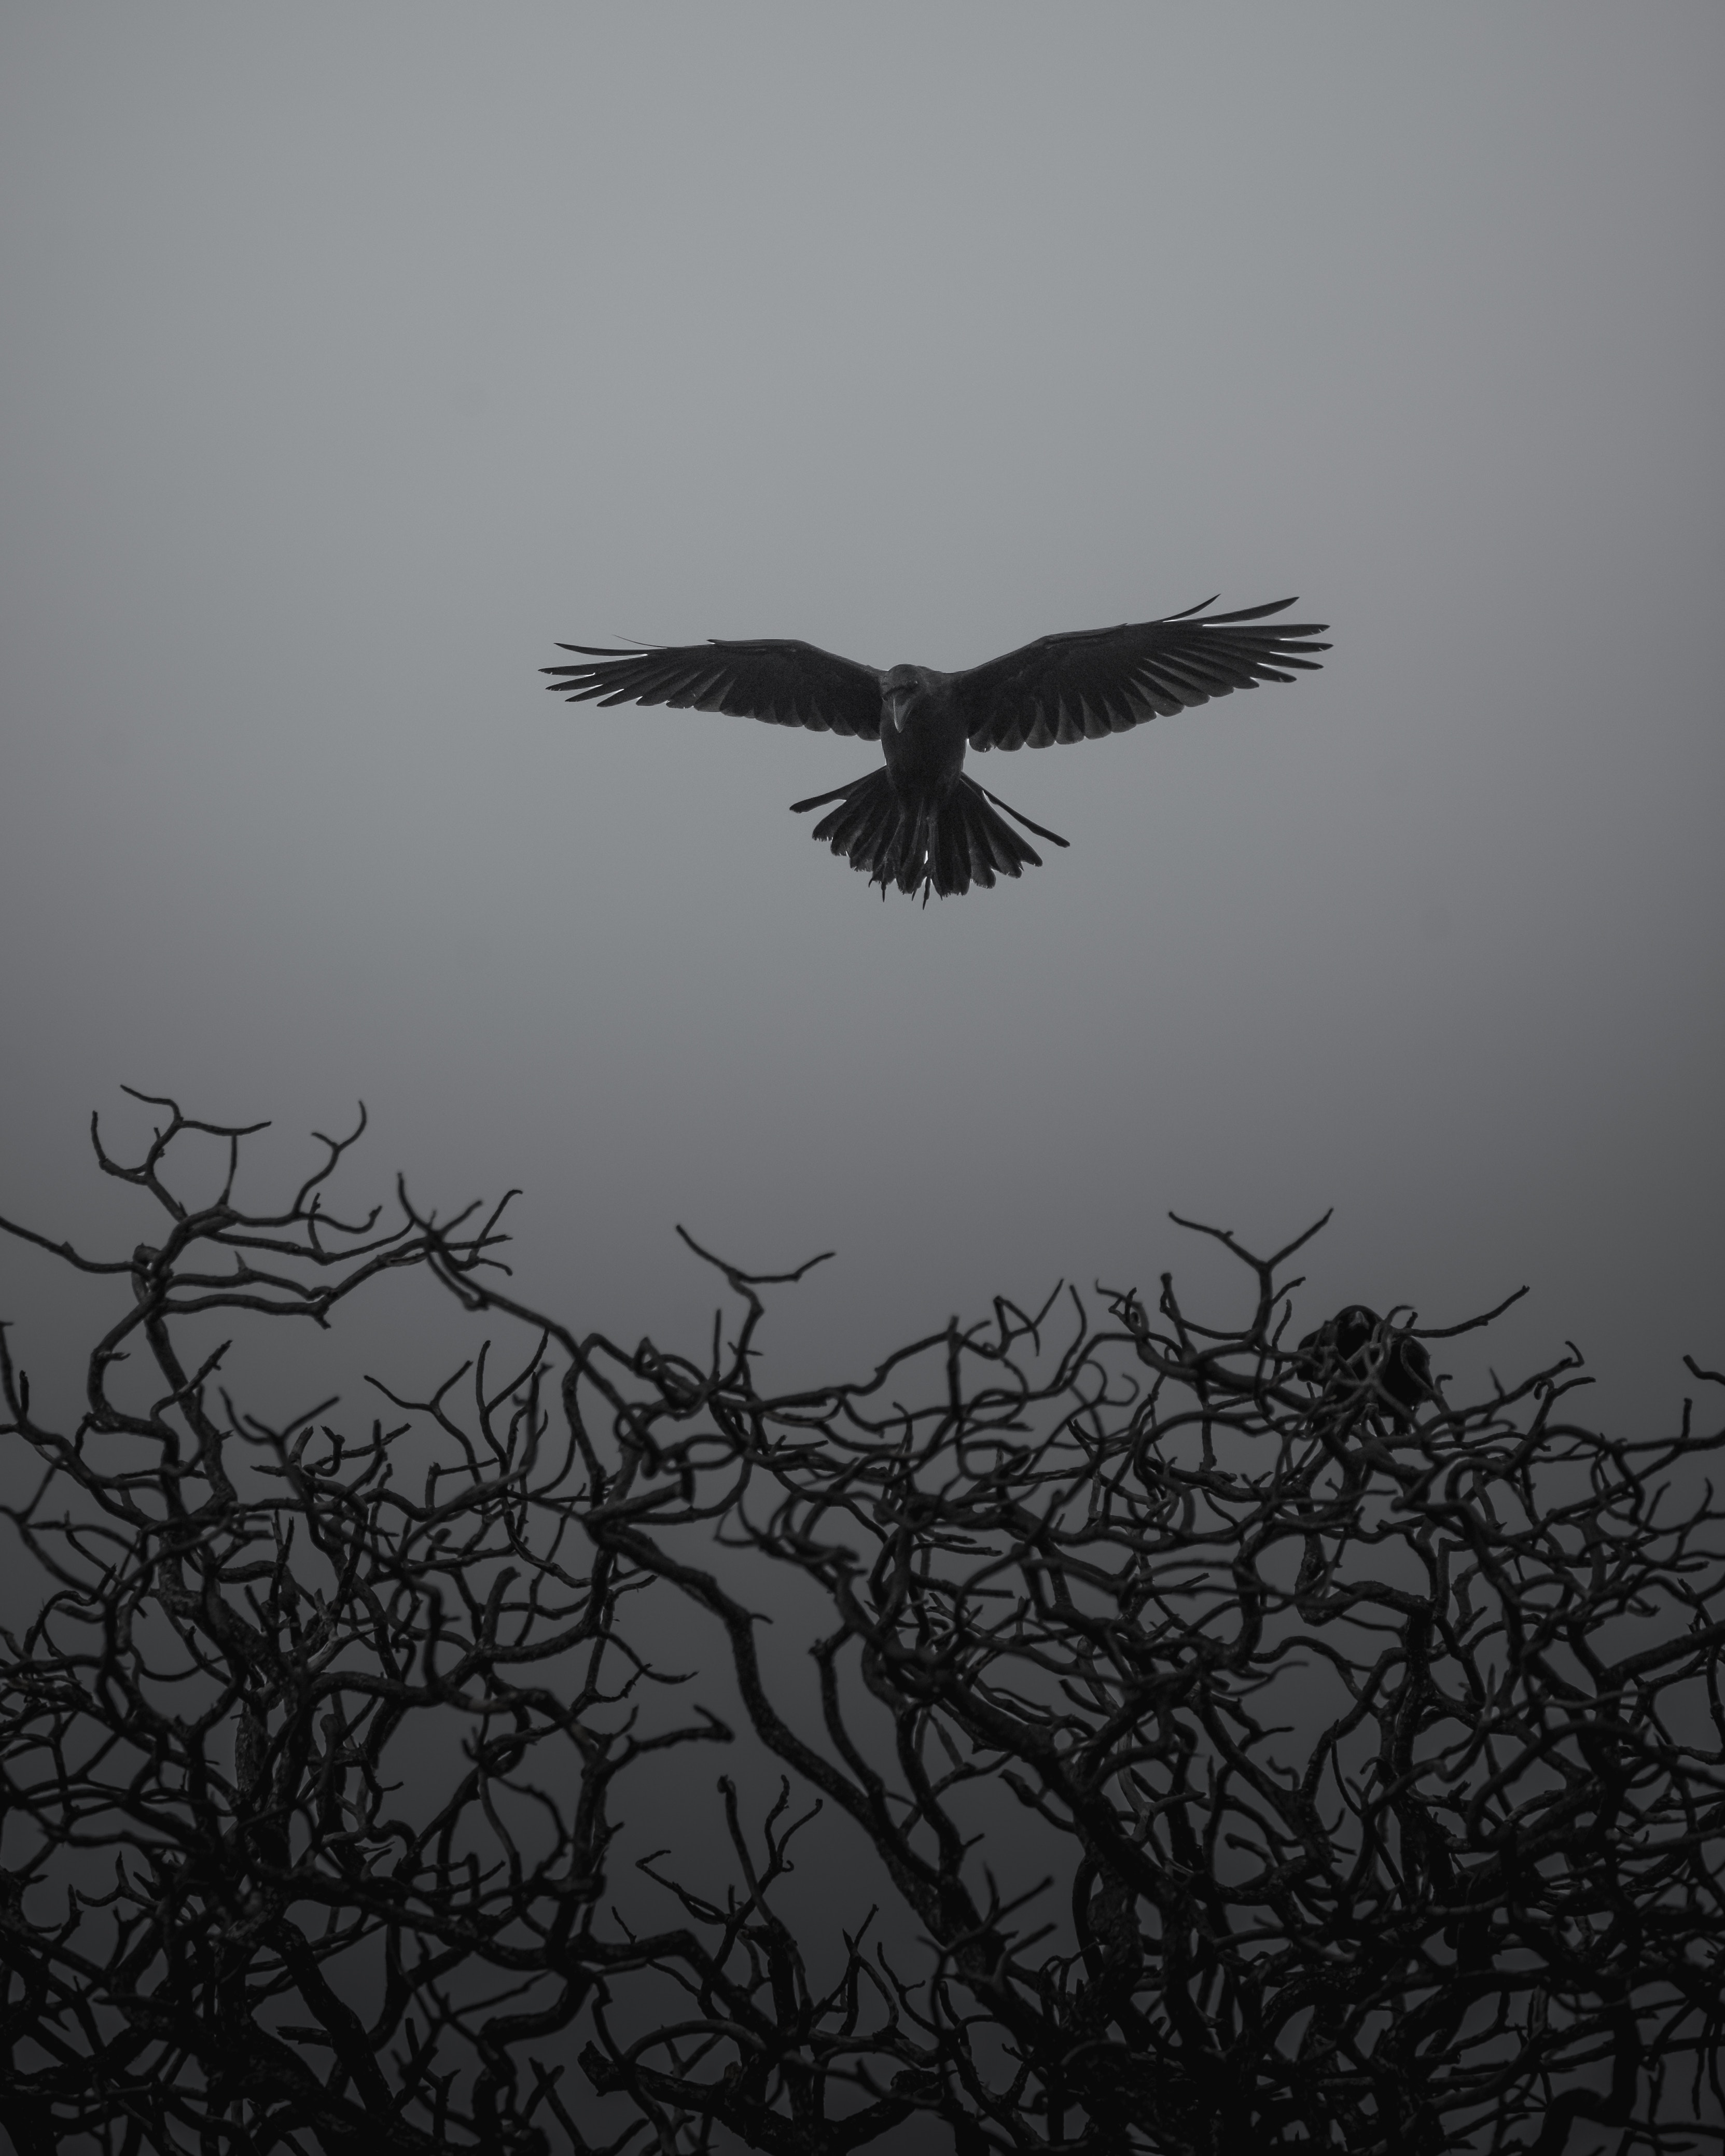 149029 download wallpaper Animals, Crow, Branches, Bw, Chb, Bird, To Fly, Fly screensavers and pictures for free